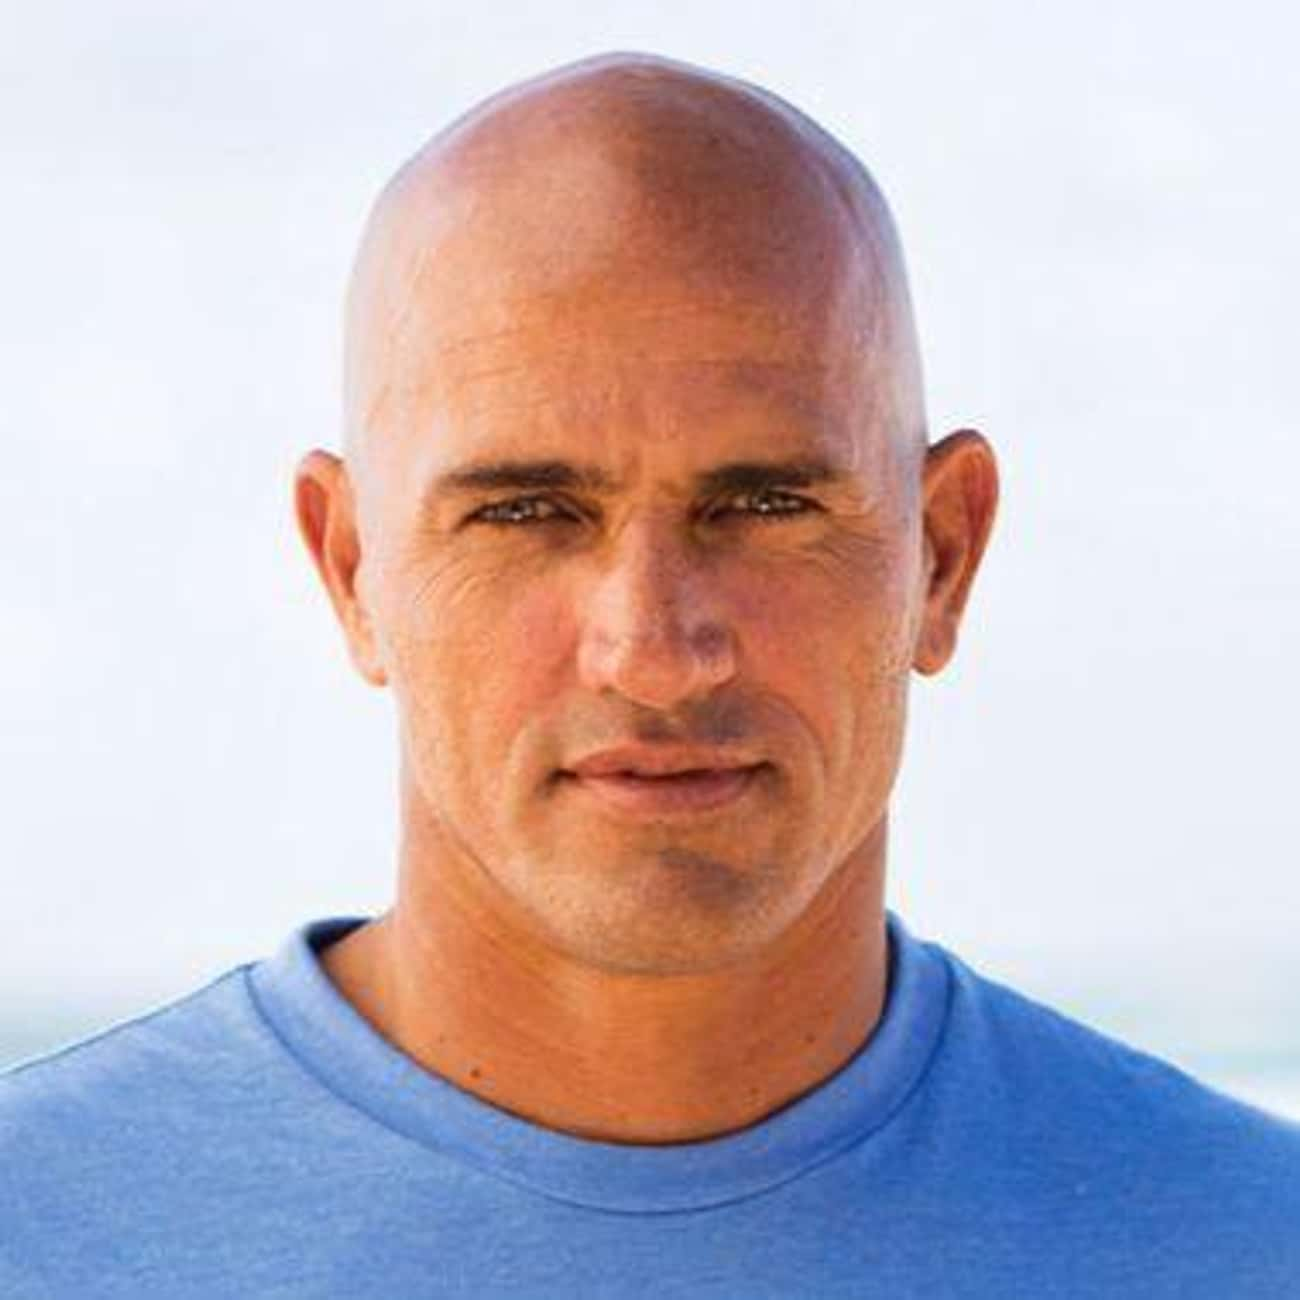 Kelly Slater is listed (or ranked) 1 on the list Famous Male Surfers